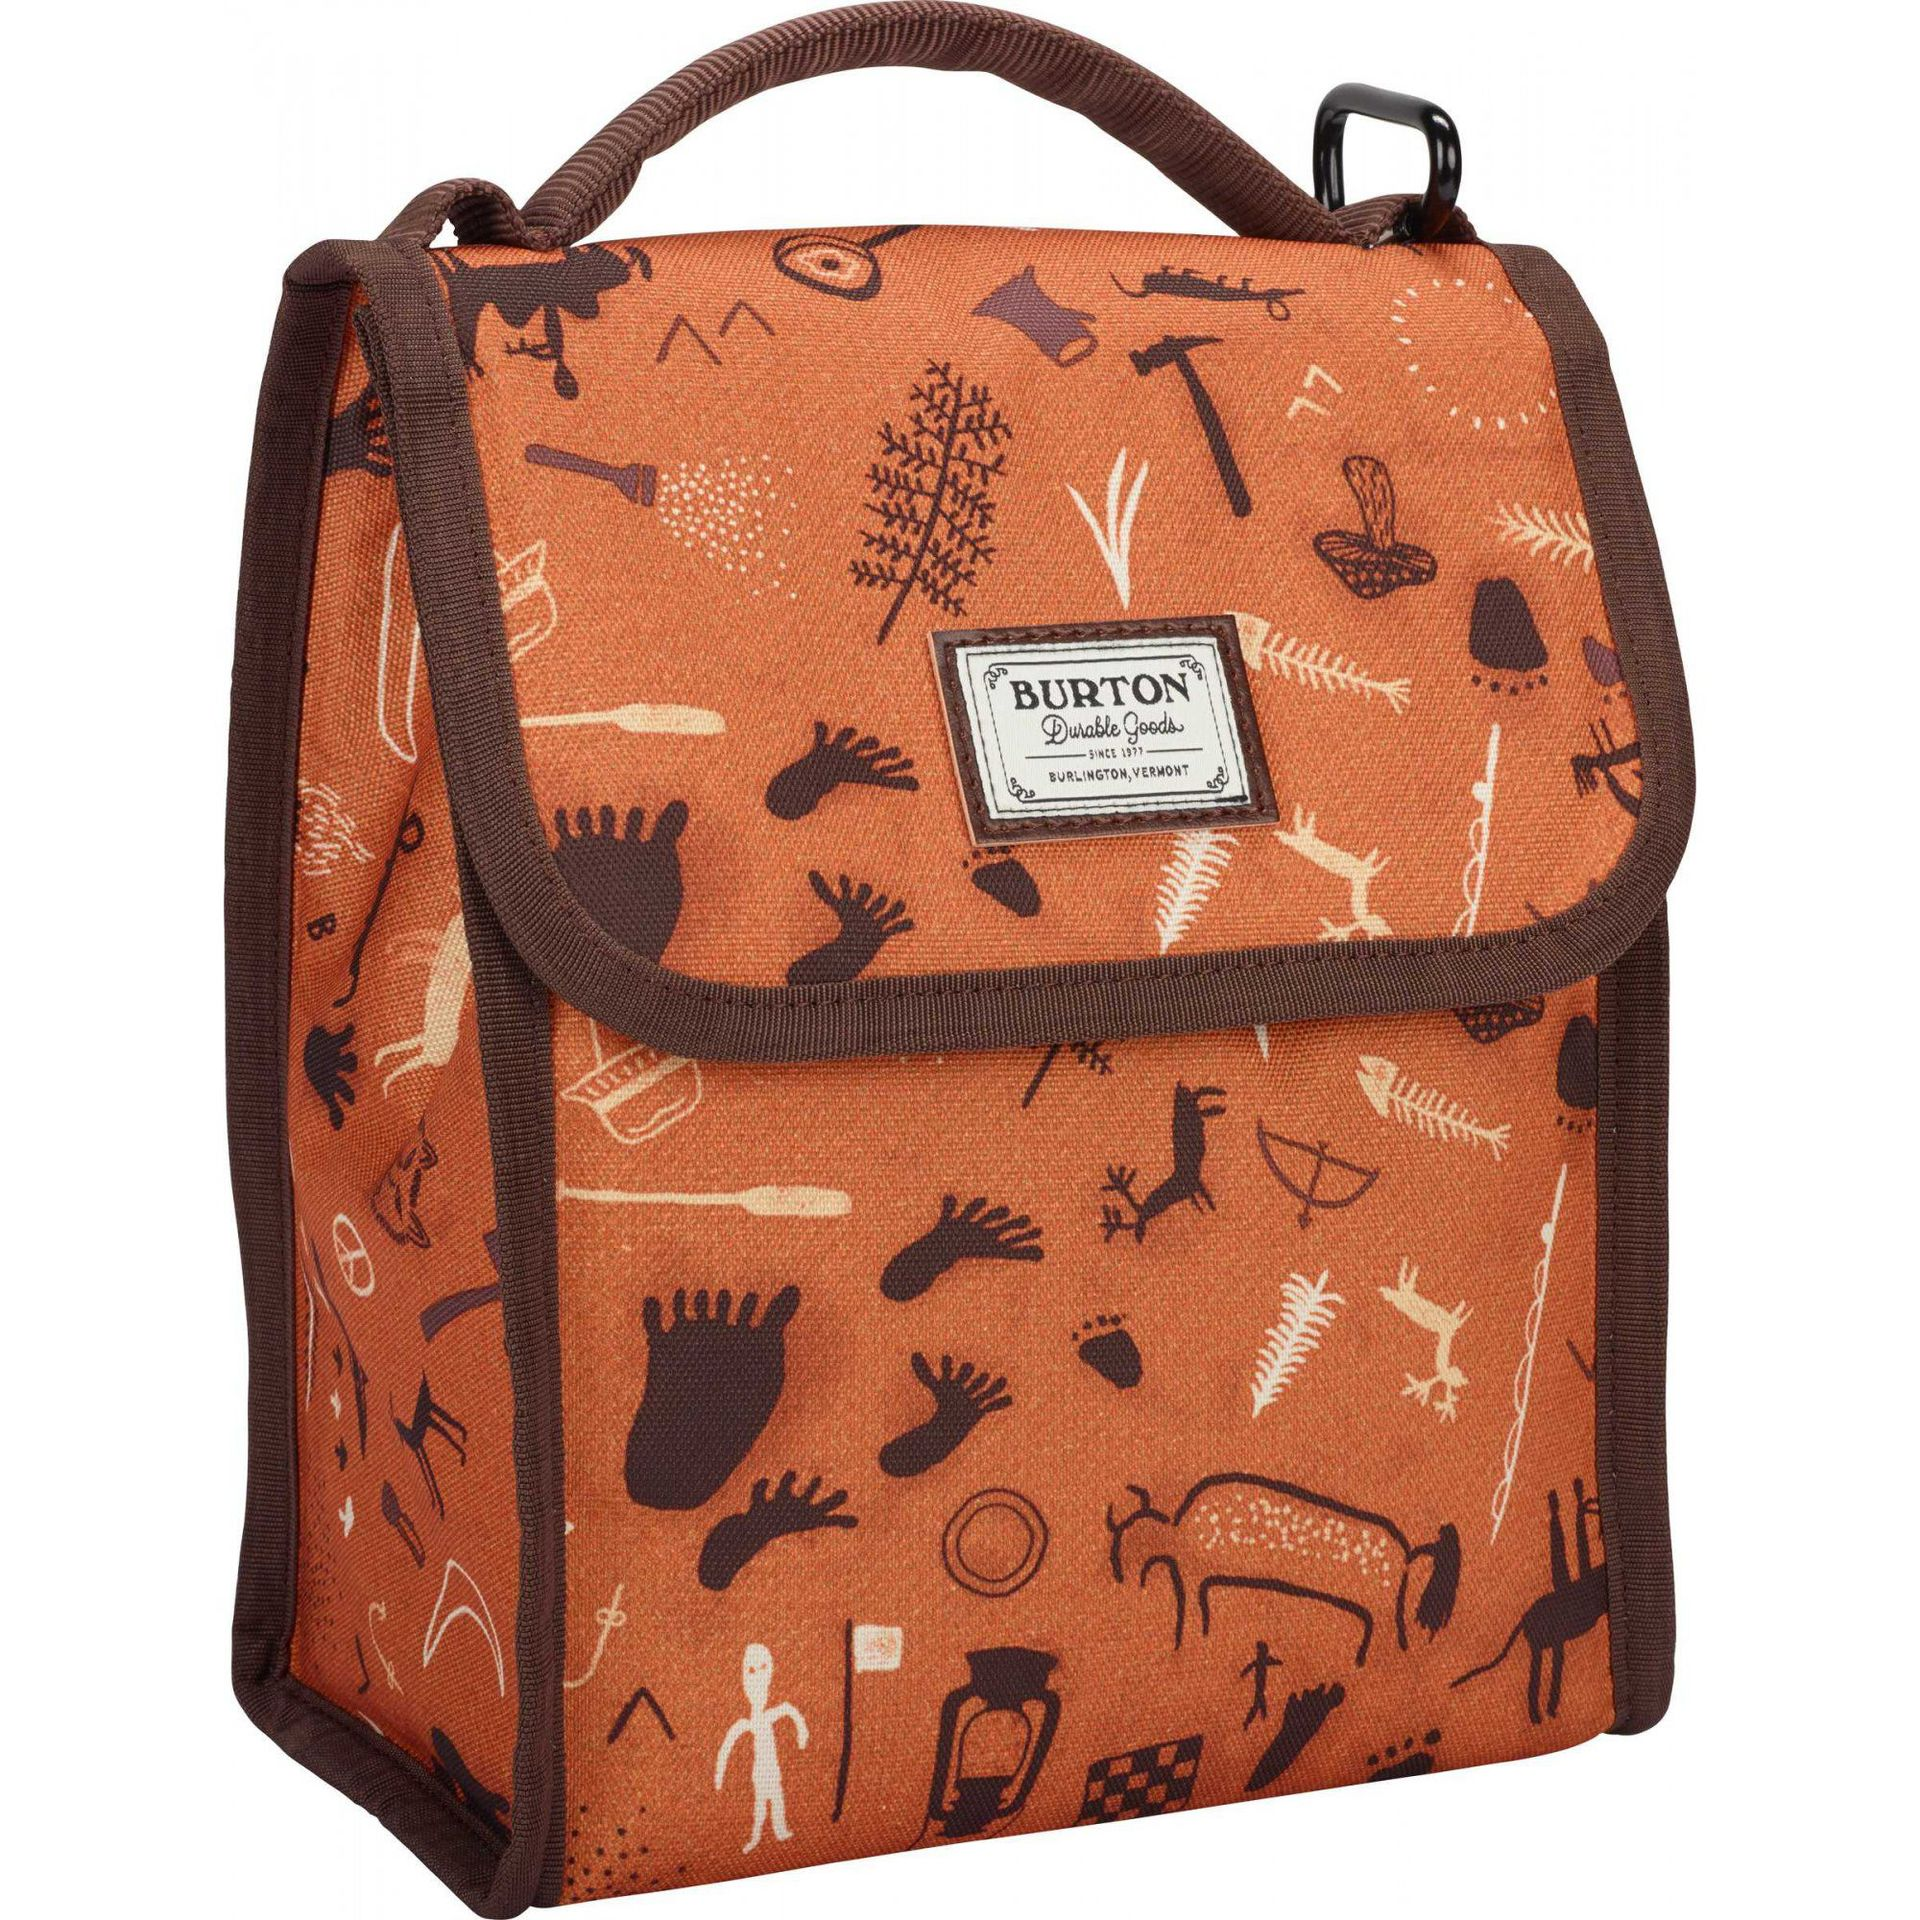 TORBA NA LUNCH BURTON LUNCH SACK CAVEMAN PRINT